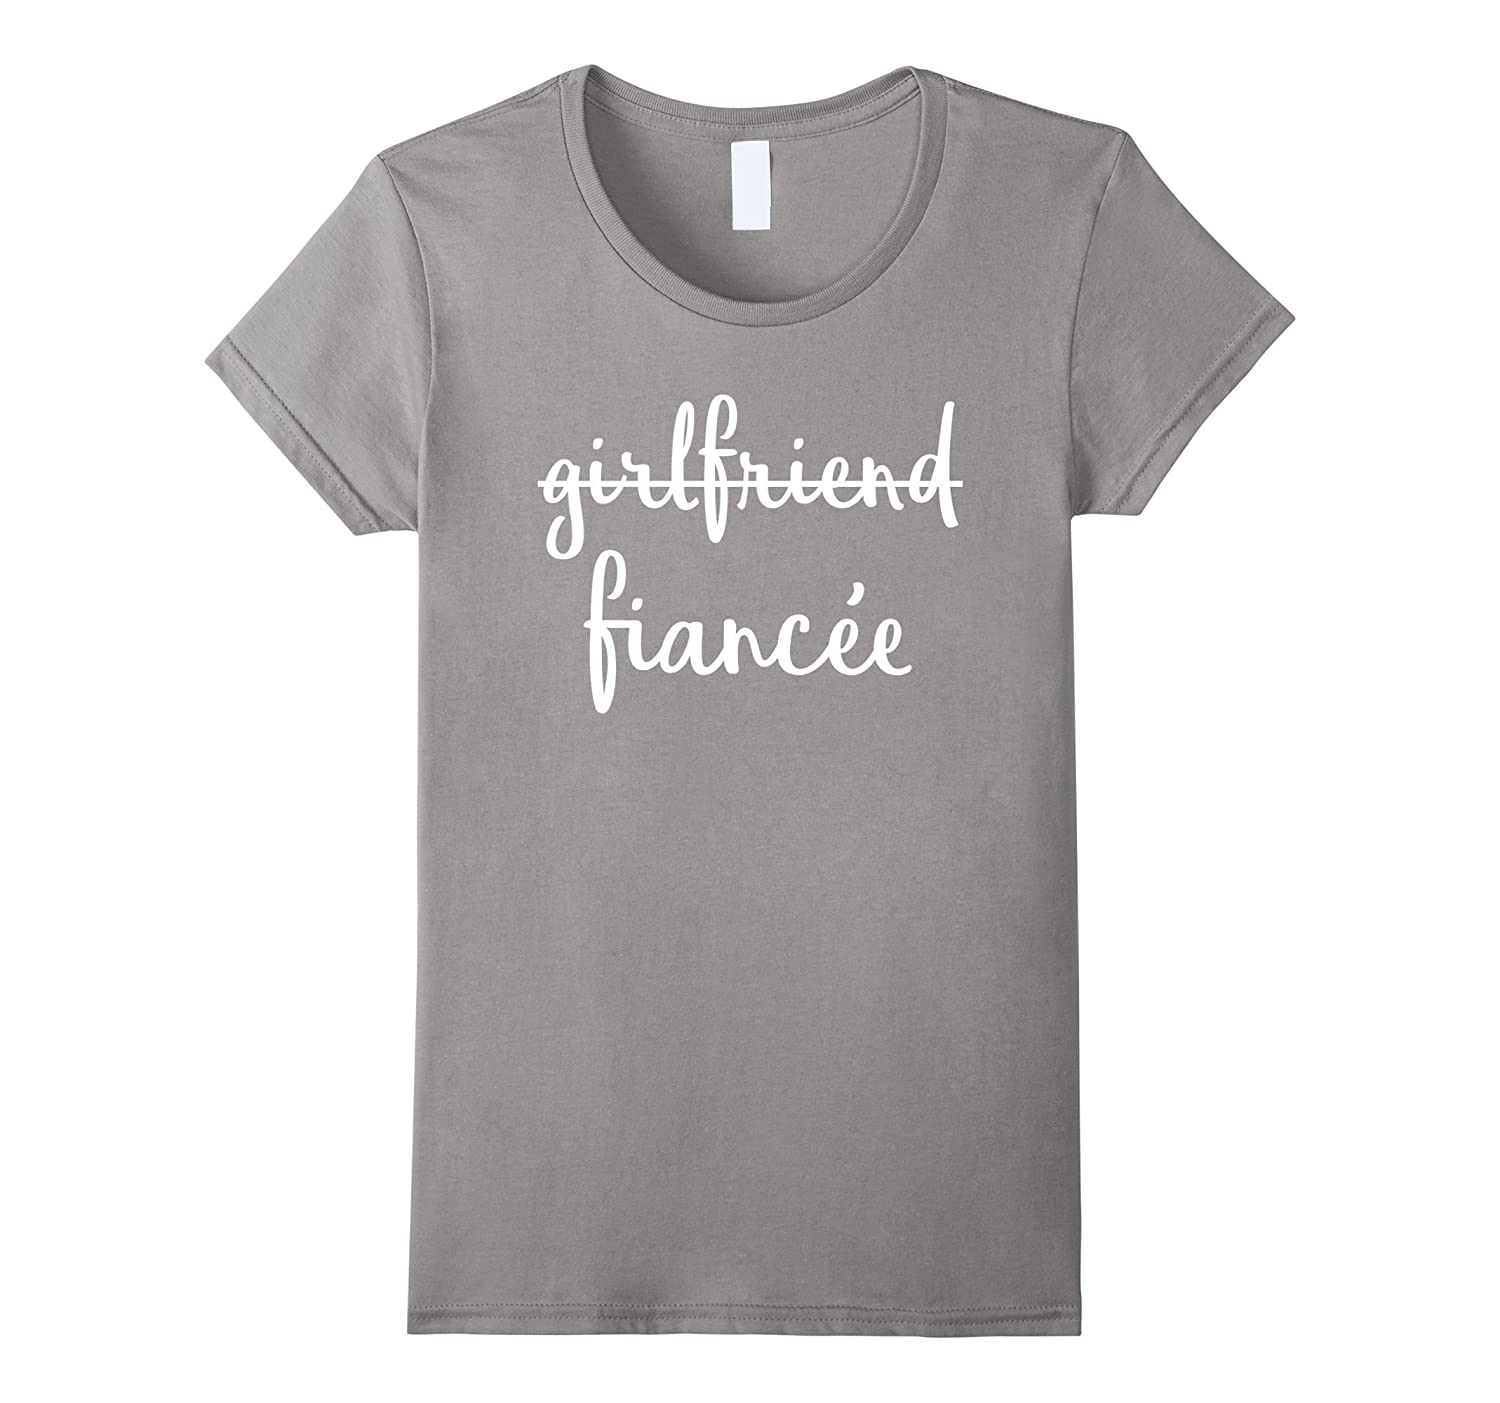 Womens Girlfriend Fiancee T Shirt, Fiance Engagement Party Tshirt-ah my shirt one gift